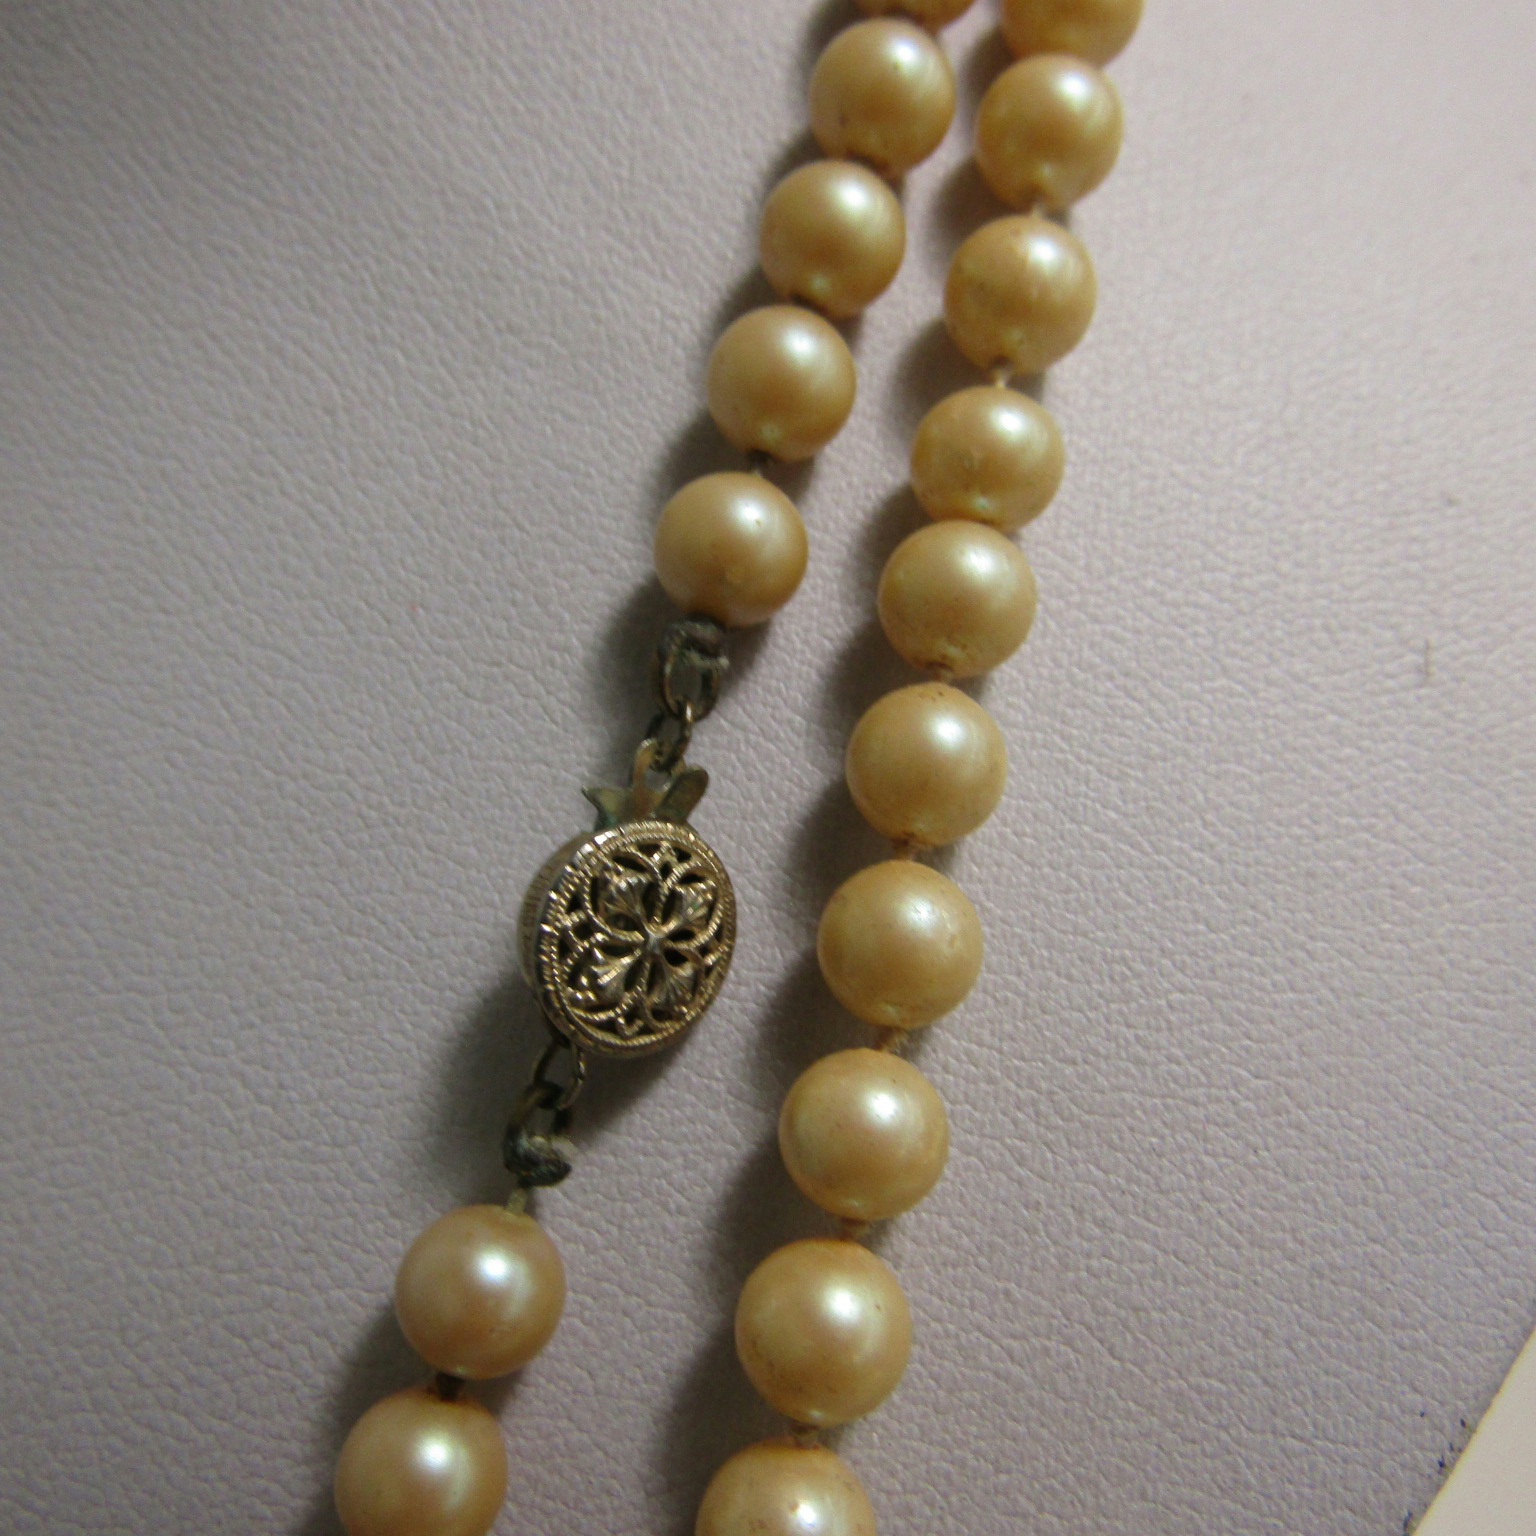 Pearl Necklace Clasps: Vintage Sterling Silver Clasp Marked Findings Jewelry Faux